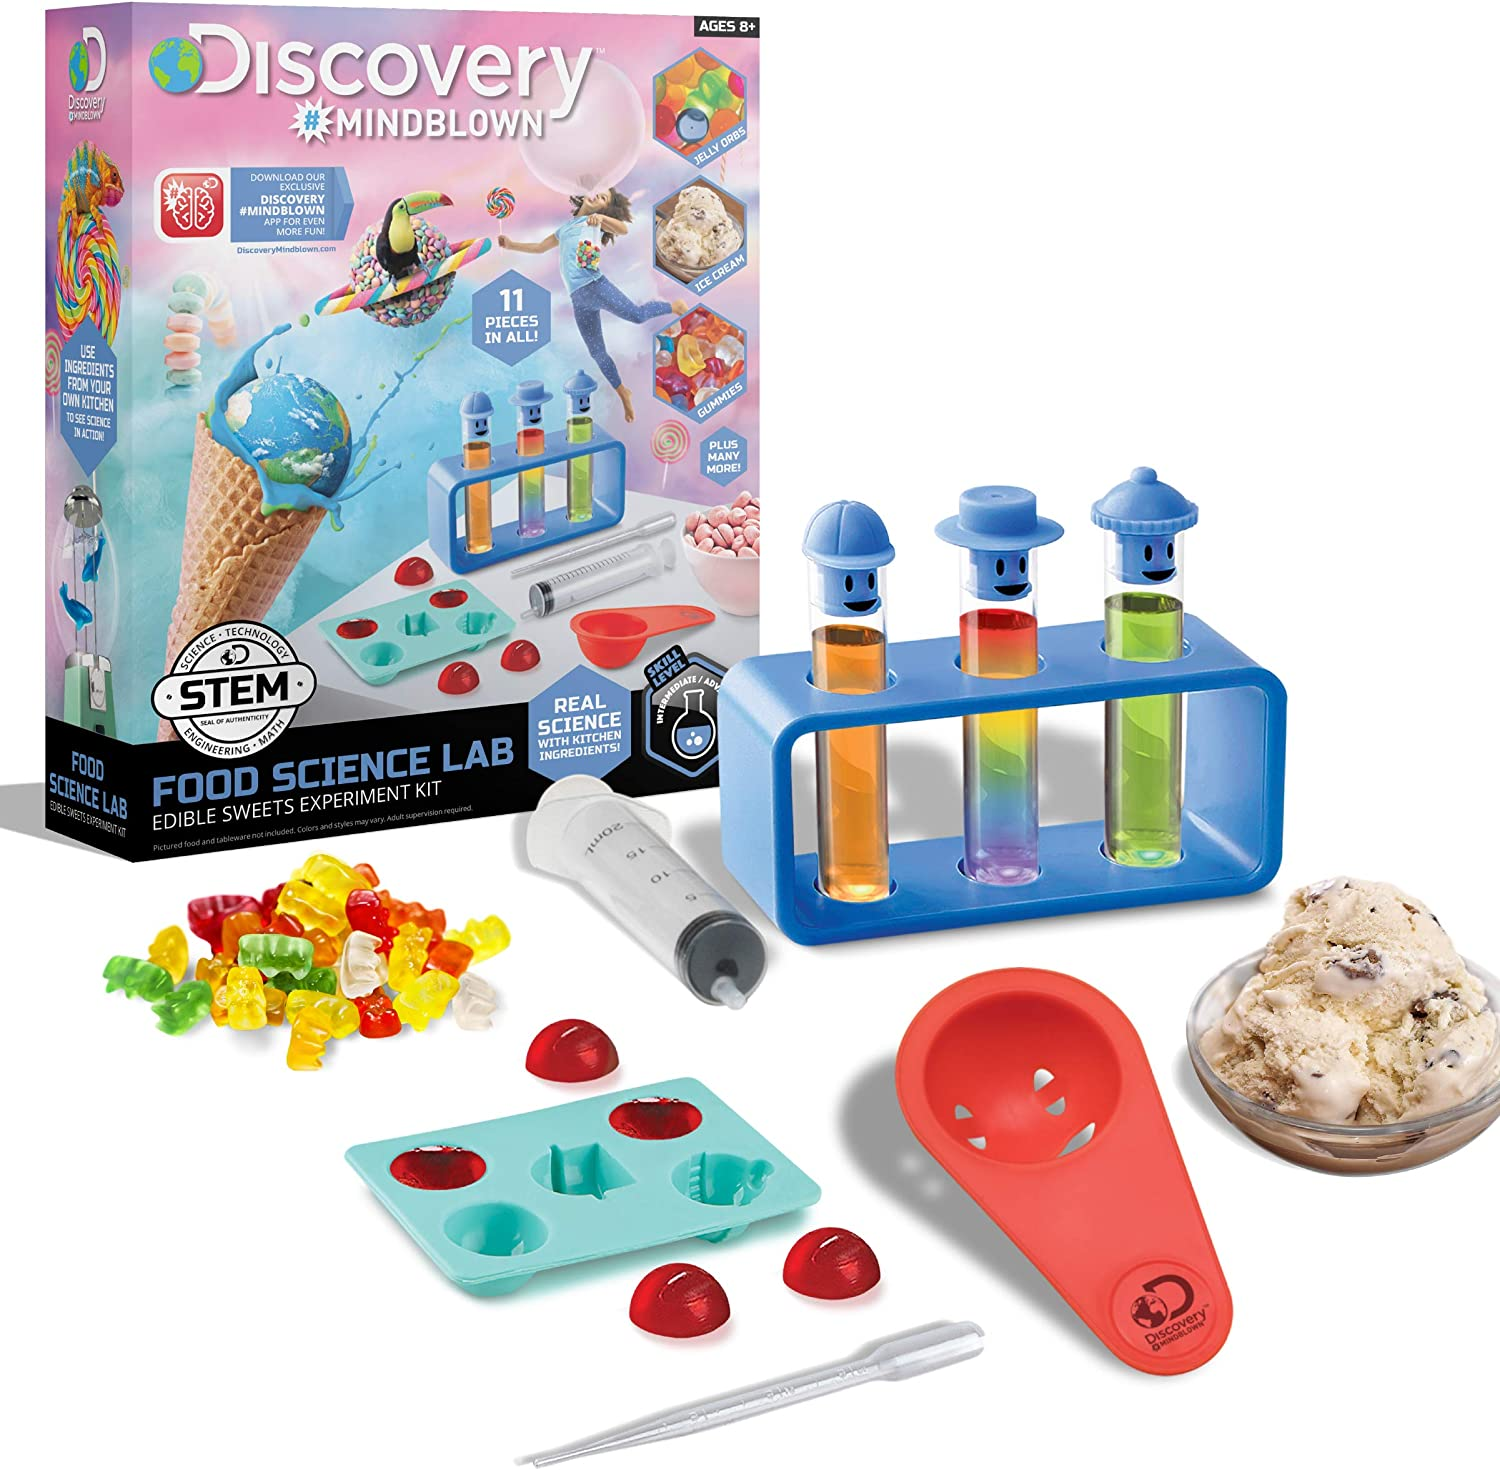 Discovery Kids Toy Experiment Kit Food Science Lab Sweets Set 11pc